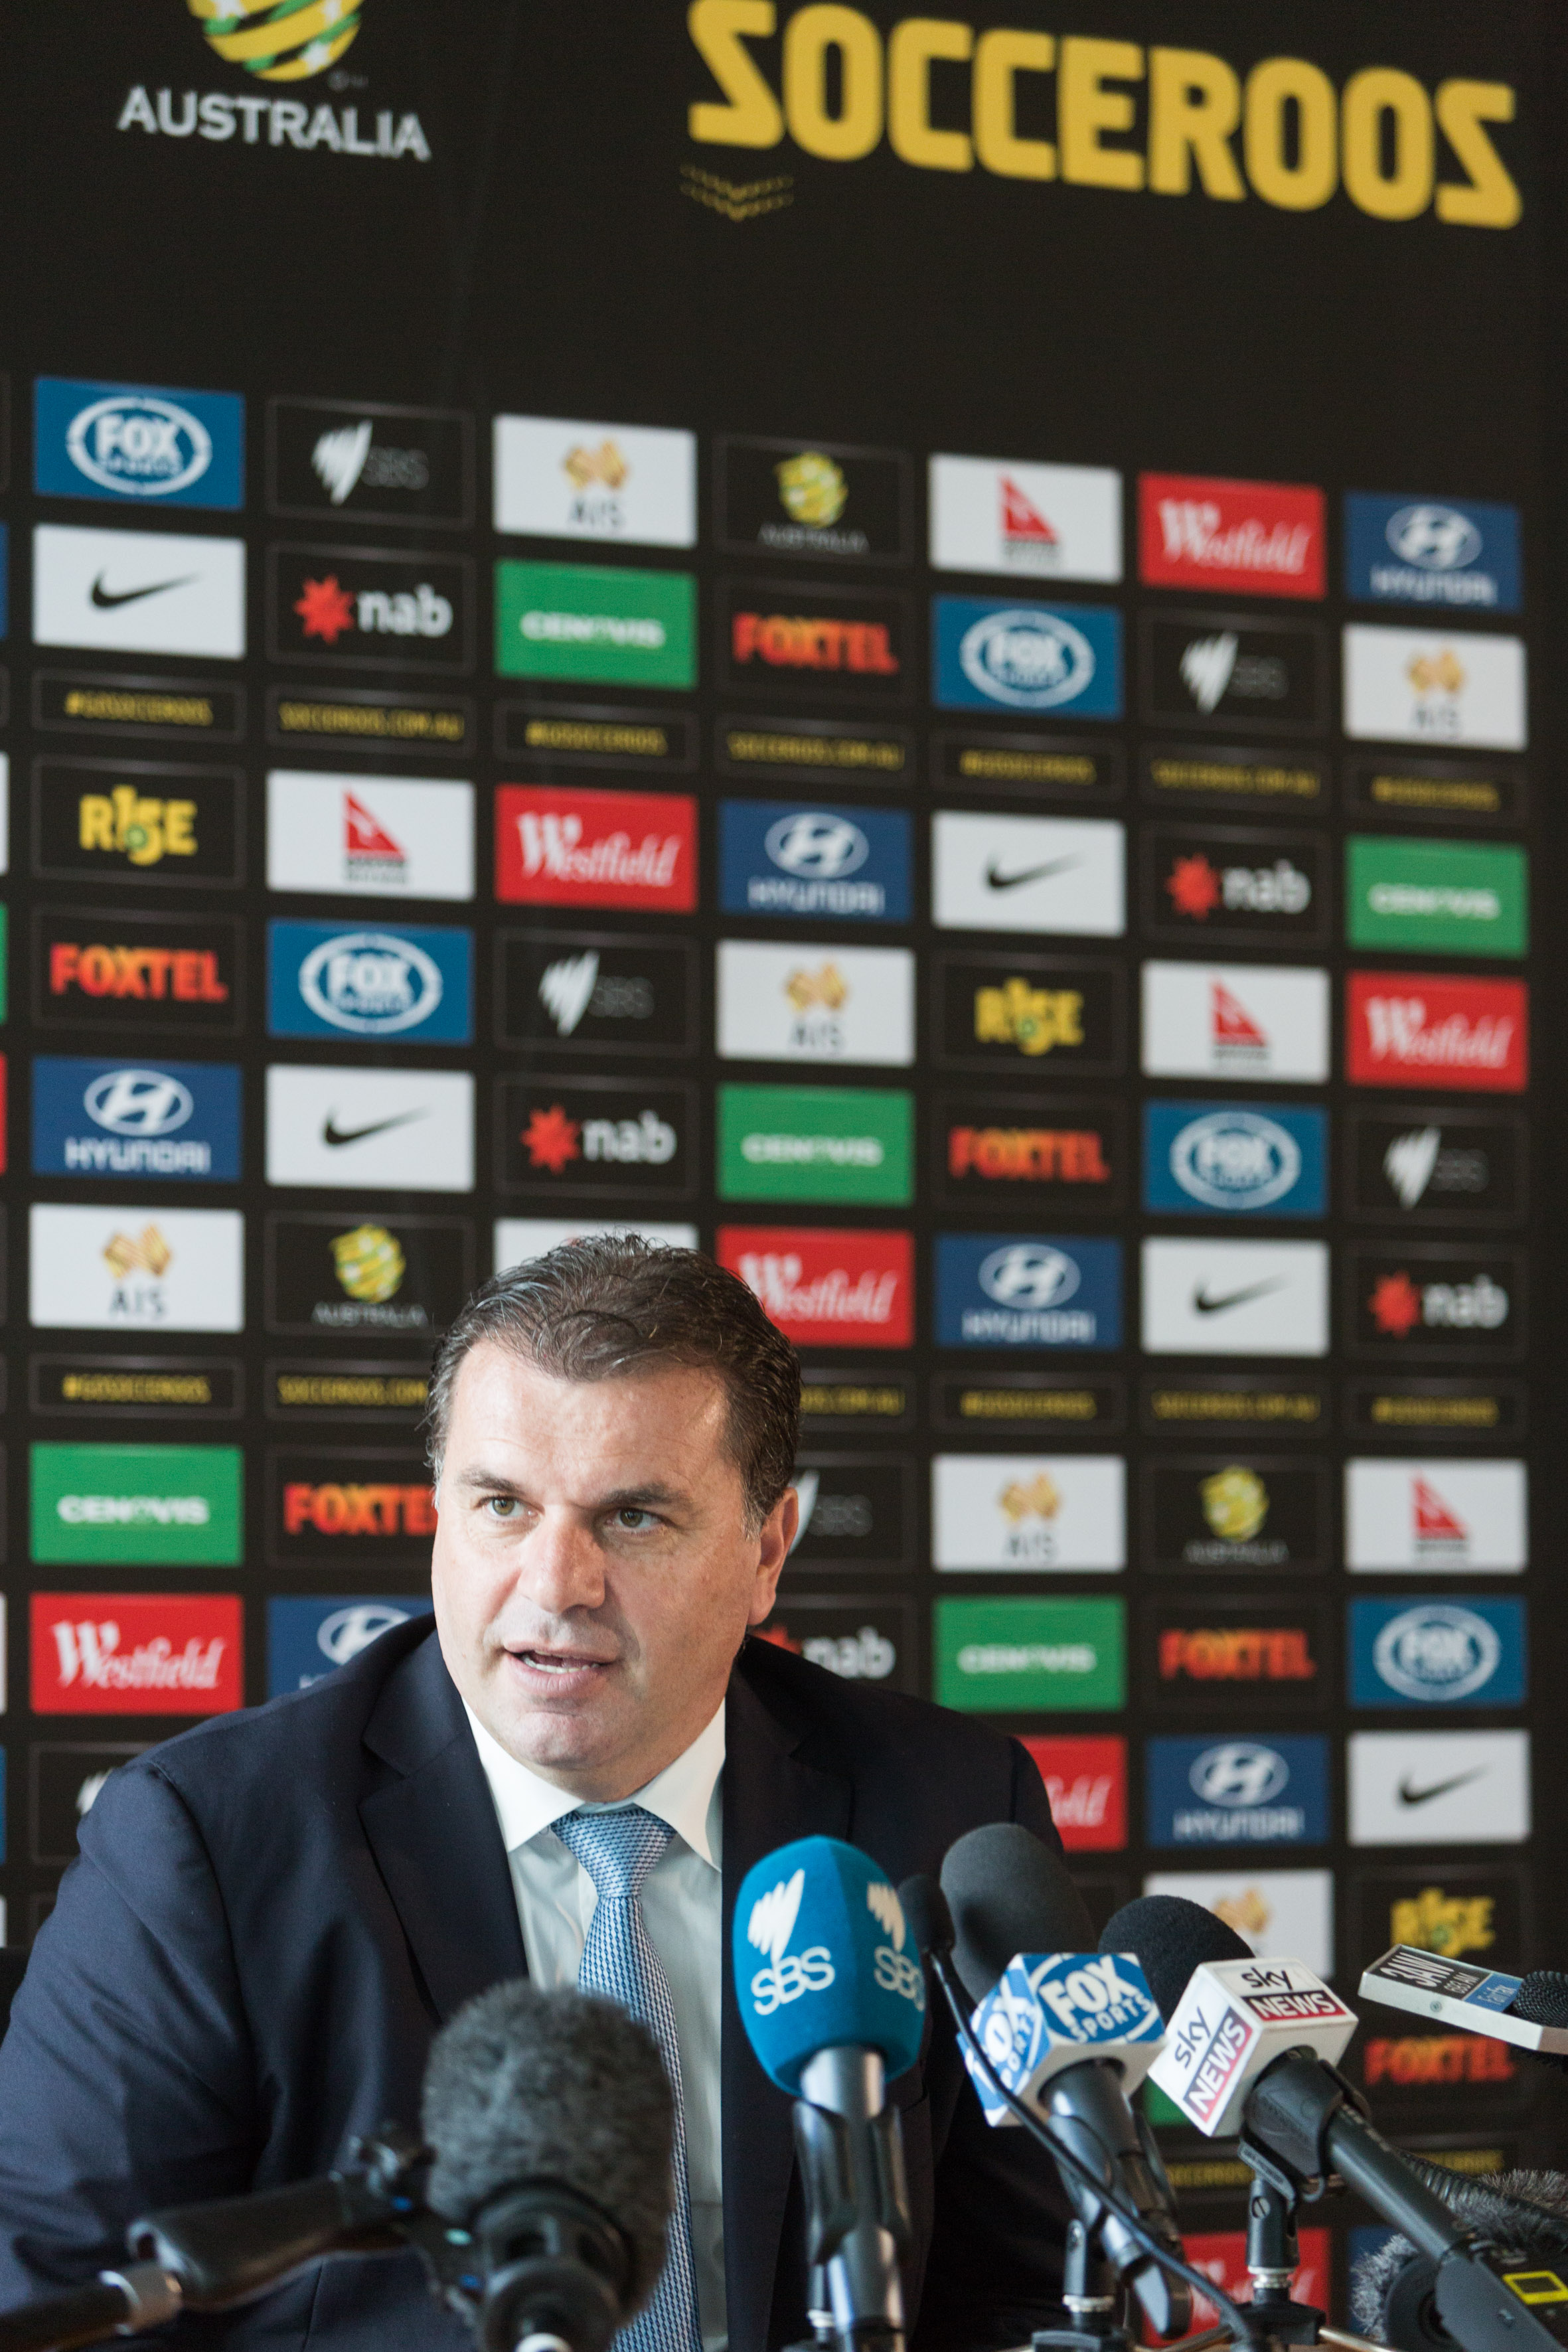 Socceroos Asian Cup Squad Announcement.jpg